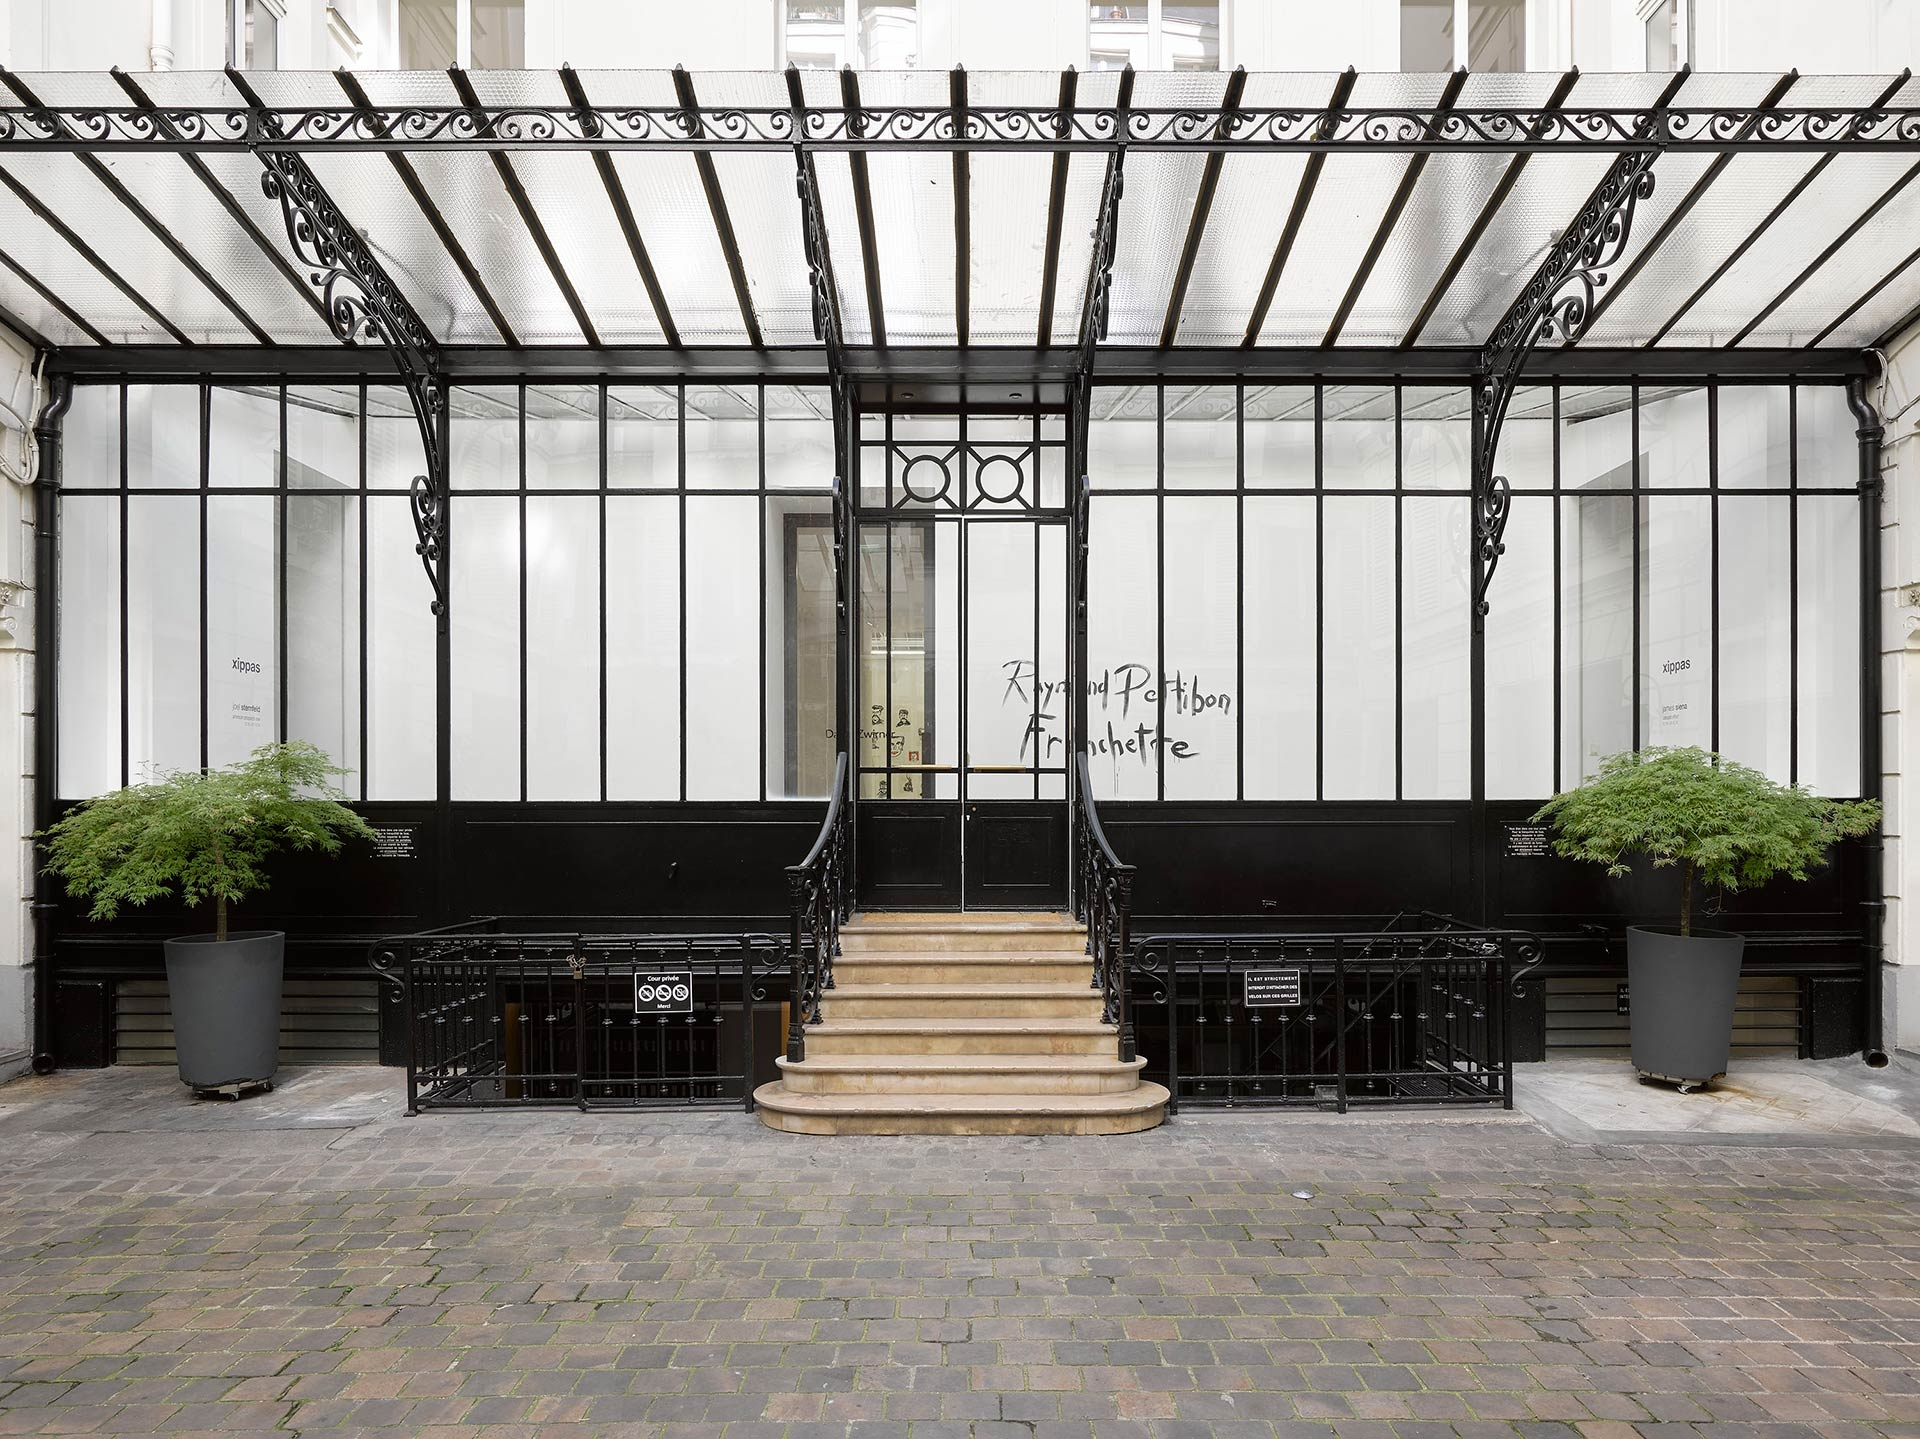 A photograph of the exterior of 108, rue Vieille du Temple, David Zwirner's Paris location.